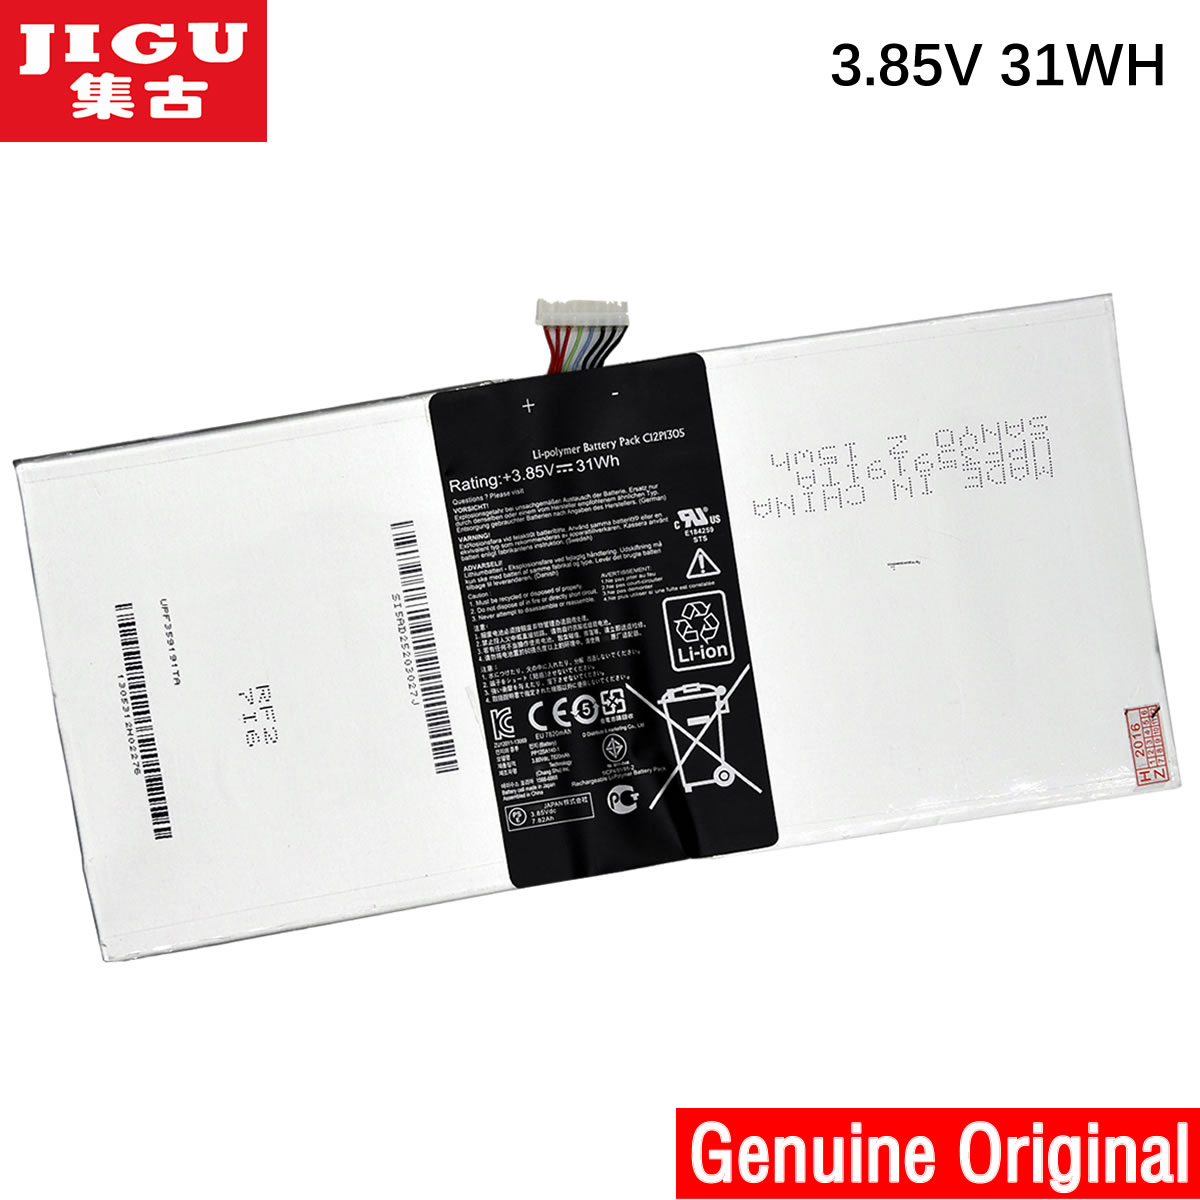 JIGU C12P1305 Original laptop Battery For ASUS Transformer Pad TF701T K00C